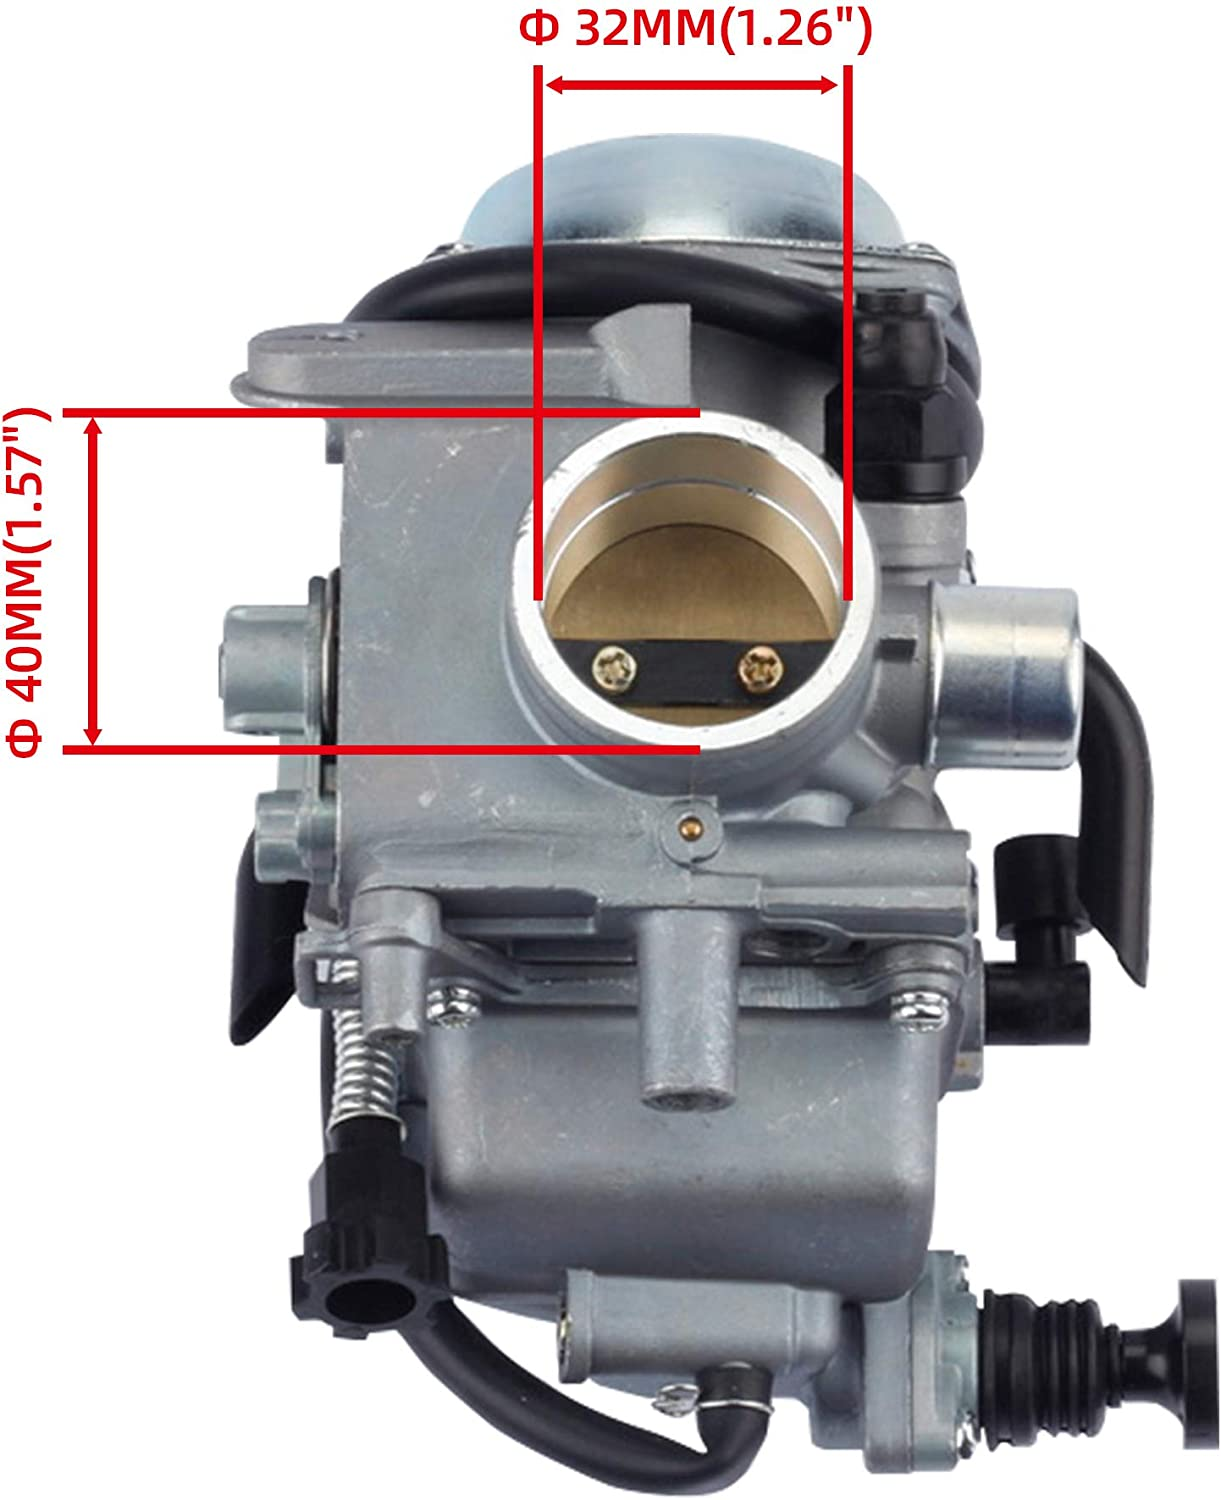 Dasbecan Carburetor with Oil//Air Filter Compatible With Honda Rancher Foreman Fourtrax ATC250SX TRX300FW 350 400 450 1985-2006 ATV Carb Assembly